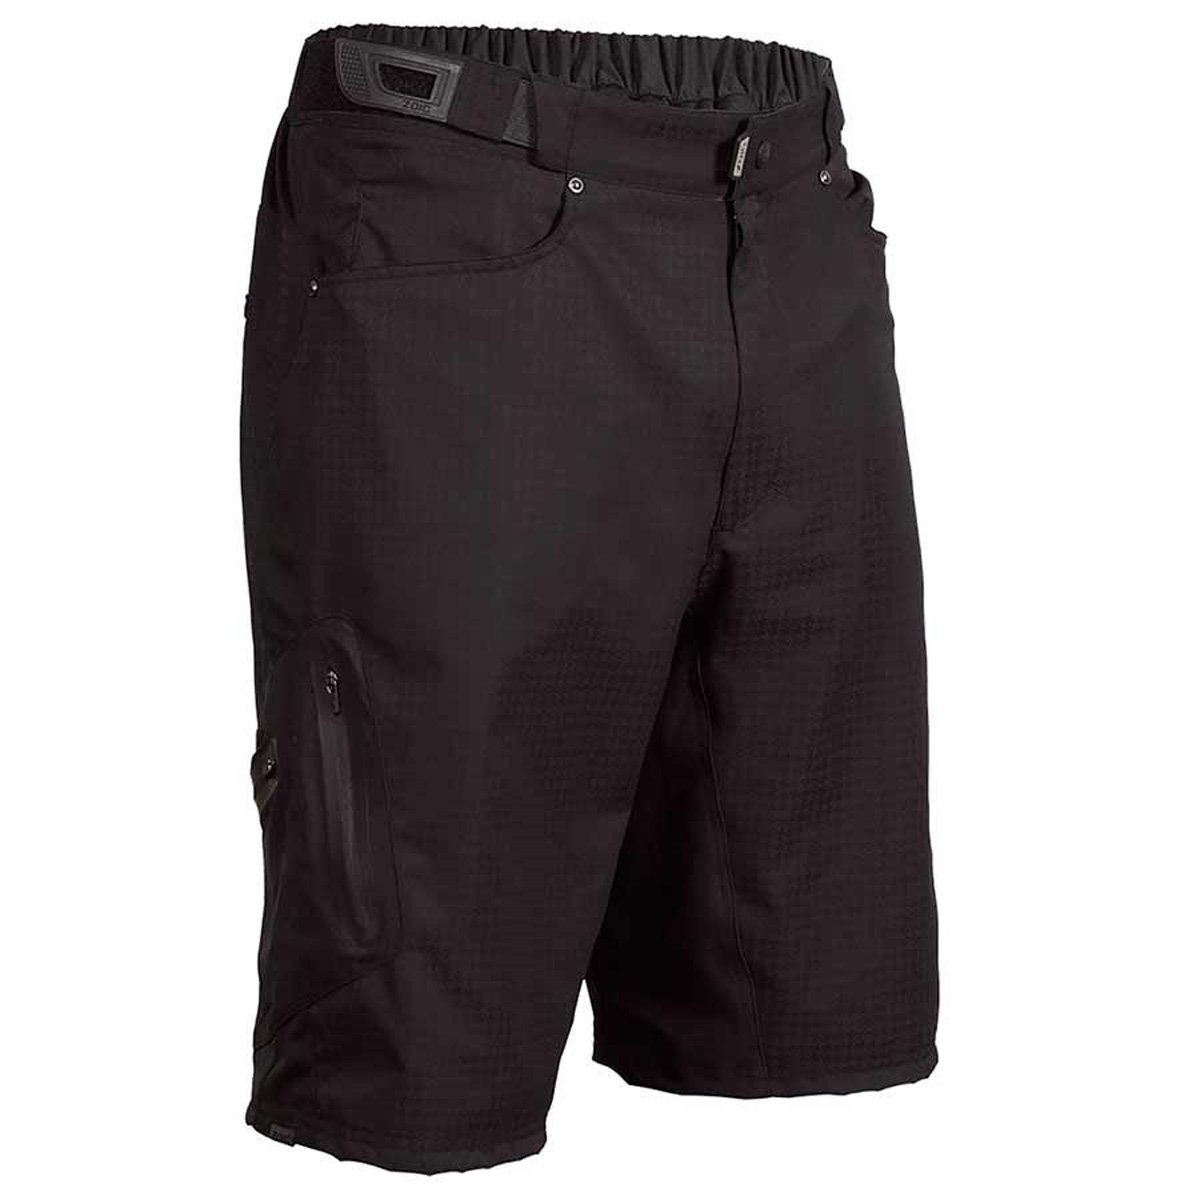 baggy zoic shorts product image